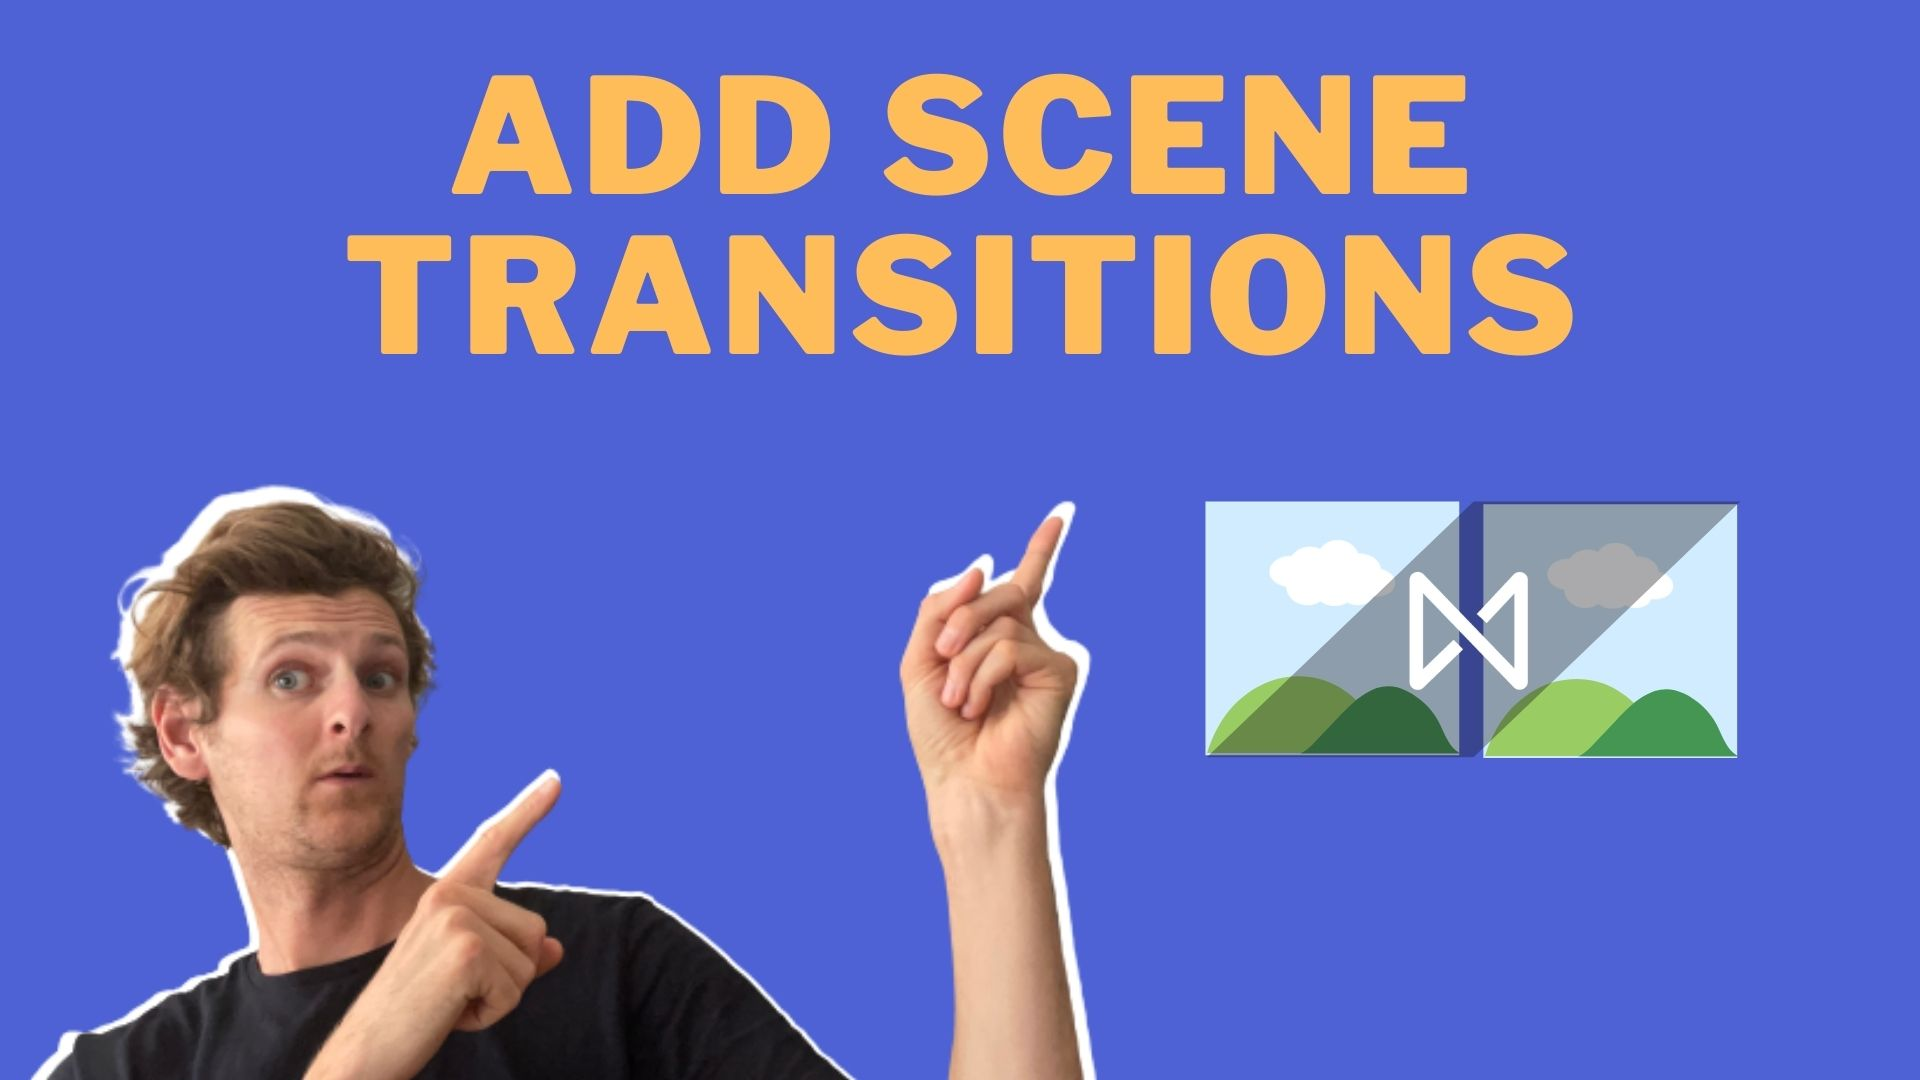 How to Add Scene Transitions Cover image